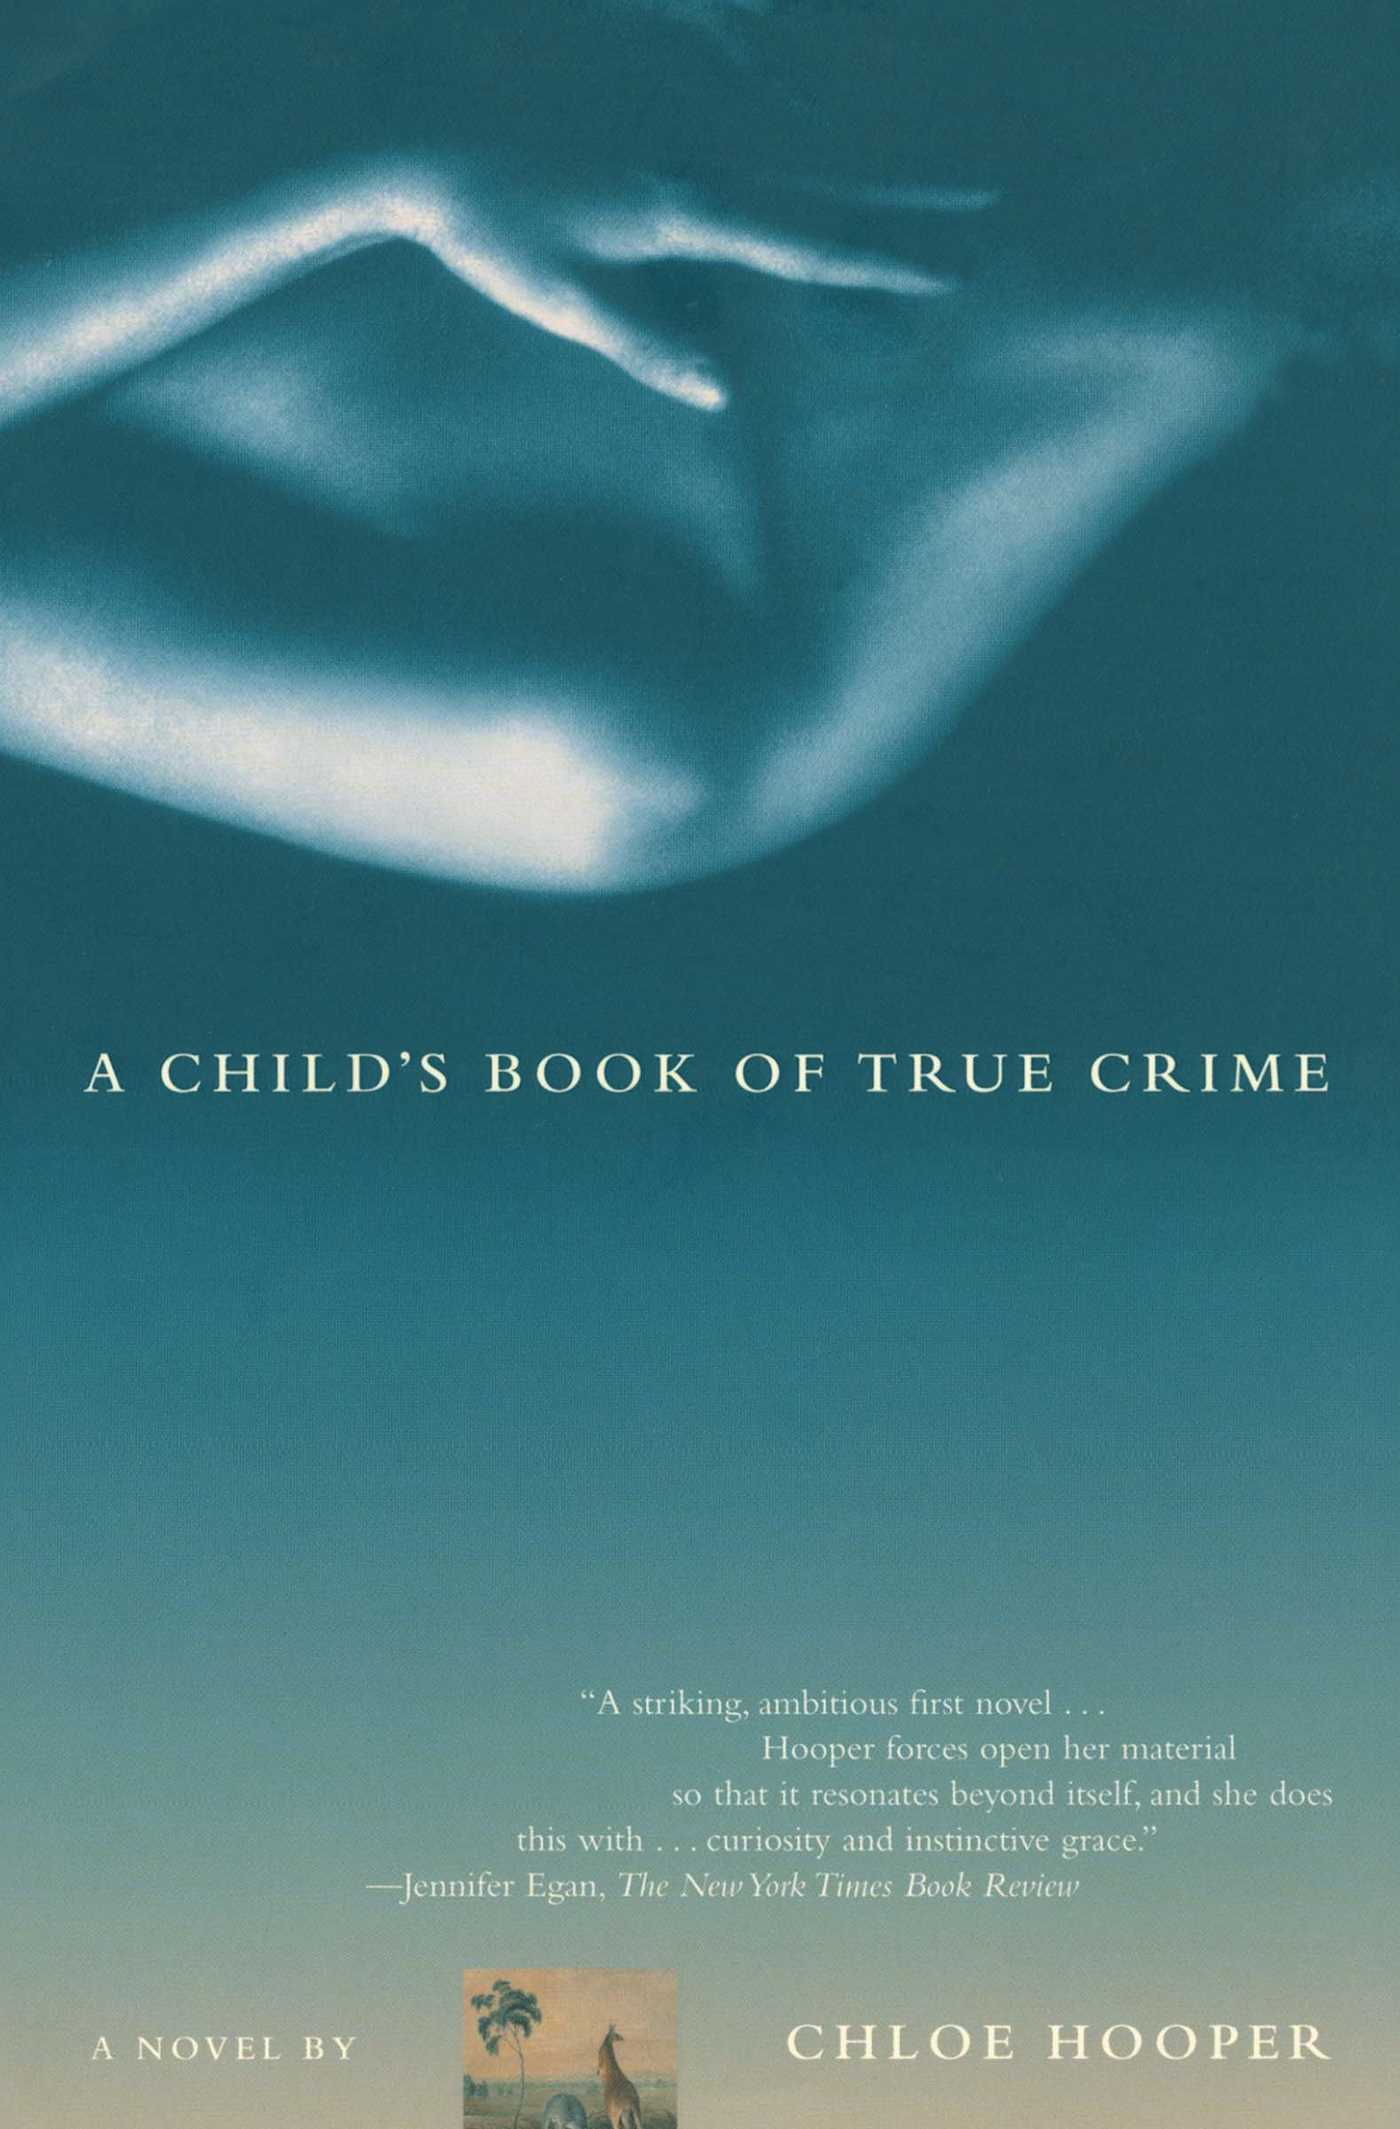 a literary analysis of a childs book of true crime by chloe hooper About the author chloe hooper's first novel, a child's book of true crime, was shortlisted for the orange prize for fiction and was a new york times notable book.